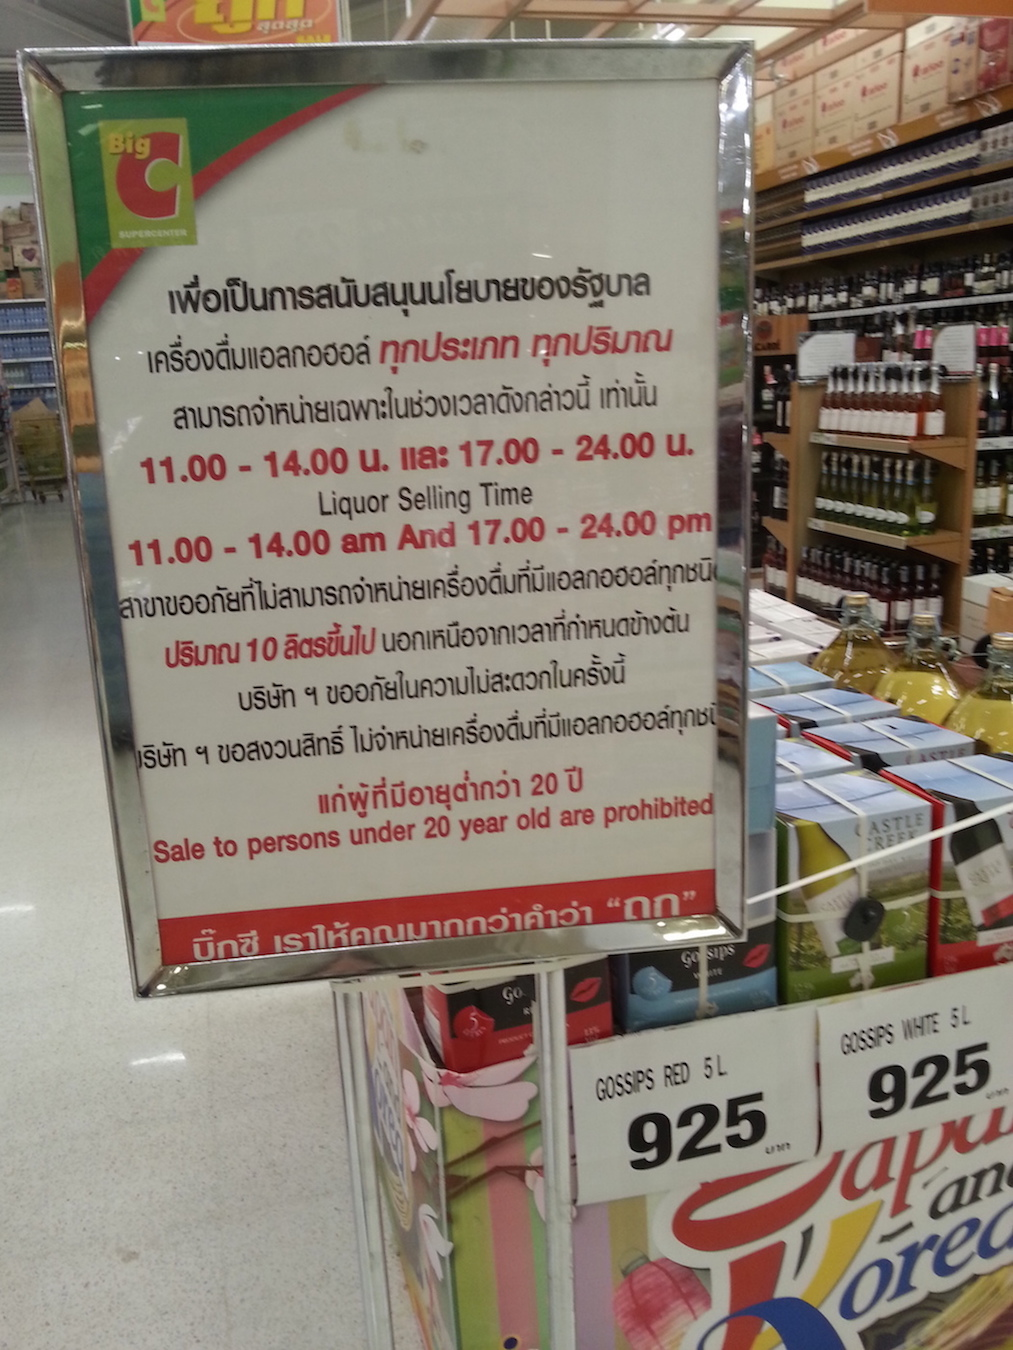 Pic: Time your shopping trips carefully if you want to buy grog